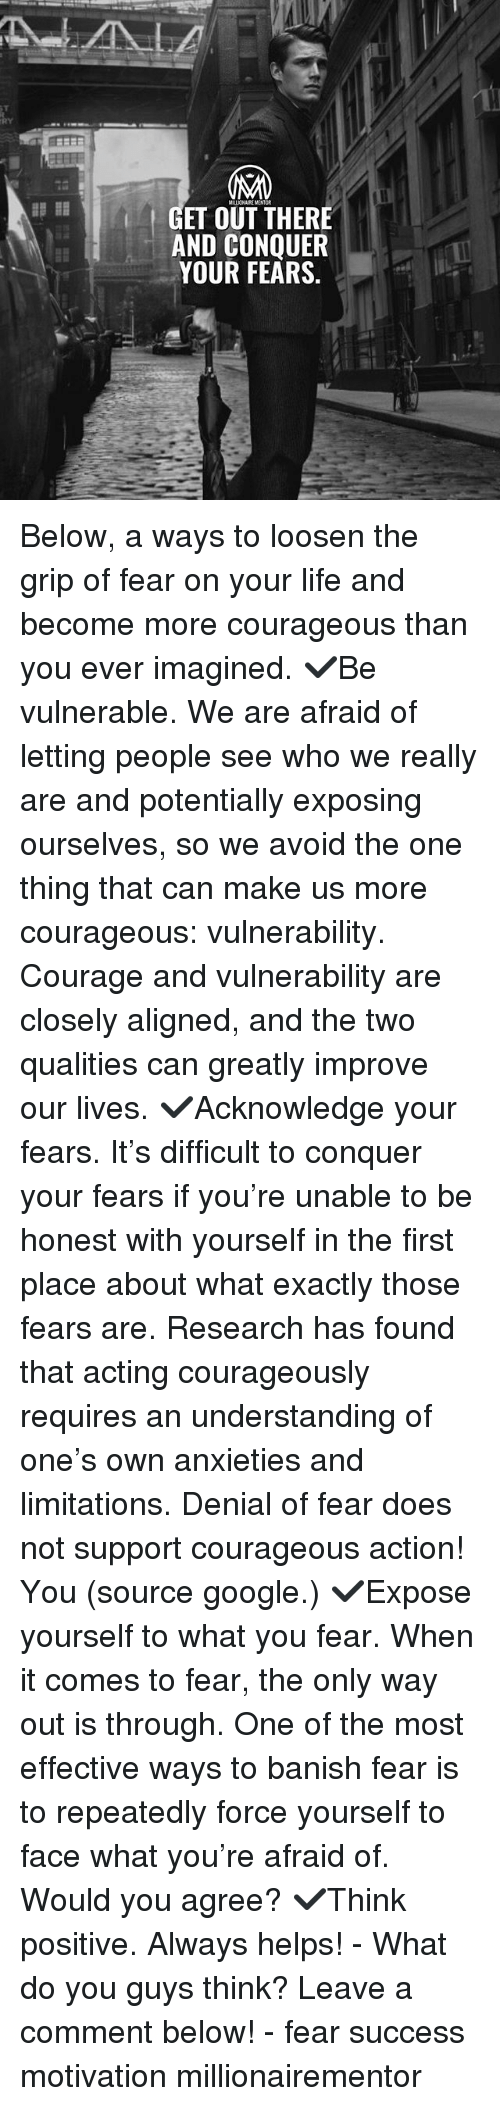 Google, Life, and Memes: ET OUT THERE  AND CONQUER  YOUR FEARS. Below, a ways to loosen the grip of fear on your life and become more courageous than you ever imagined. ✔️Be vulnerable. We are afraid of letting people see who we really are and potentially exposing ourselves, so we avoid the one thing that can make us more courageous: vulnerability. Courage and vulnerability are closely aligned, and the two qualities can greatly improve our lives. ✔️Acknowledge your fears. It's difficult to conquer your fears if you're unable to be honest with yourself in the first place about what exactly those fears are. Research has found that acting courageously requires an understanding of one's own anxieties and limitations. Denial of fear does not support courageous action! You (source google.) ✔️Expose yourself to what you fear. When it comes to fear, the only way out is through. One of the most effective ways to banish fear is to repeatedly force yourself to face what you're afraid of. Would you agree? ✔️Think positive. Always helps! - What do you guys think? Leave a comment below! - fear success motivation millionairementor